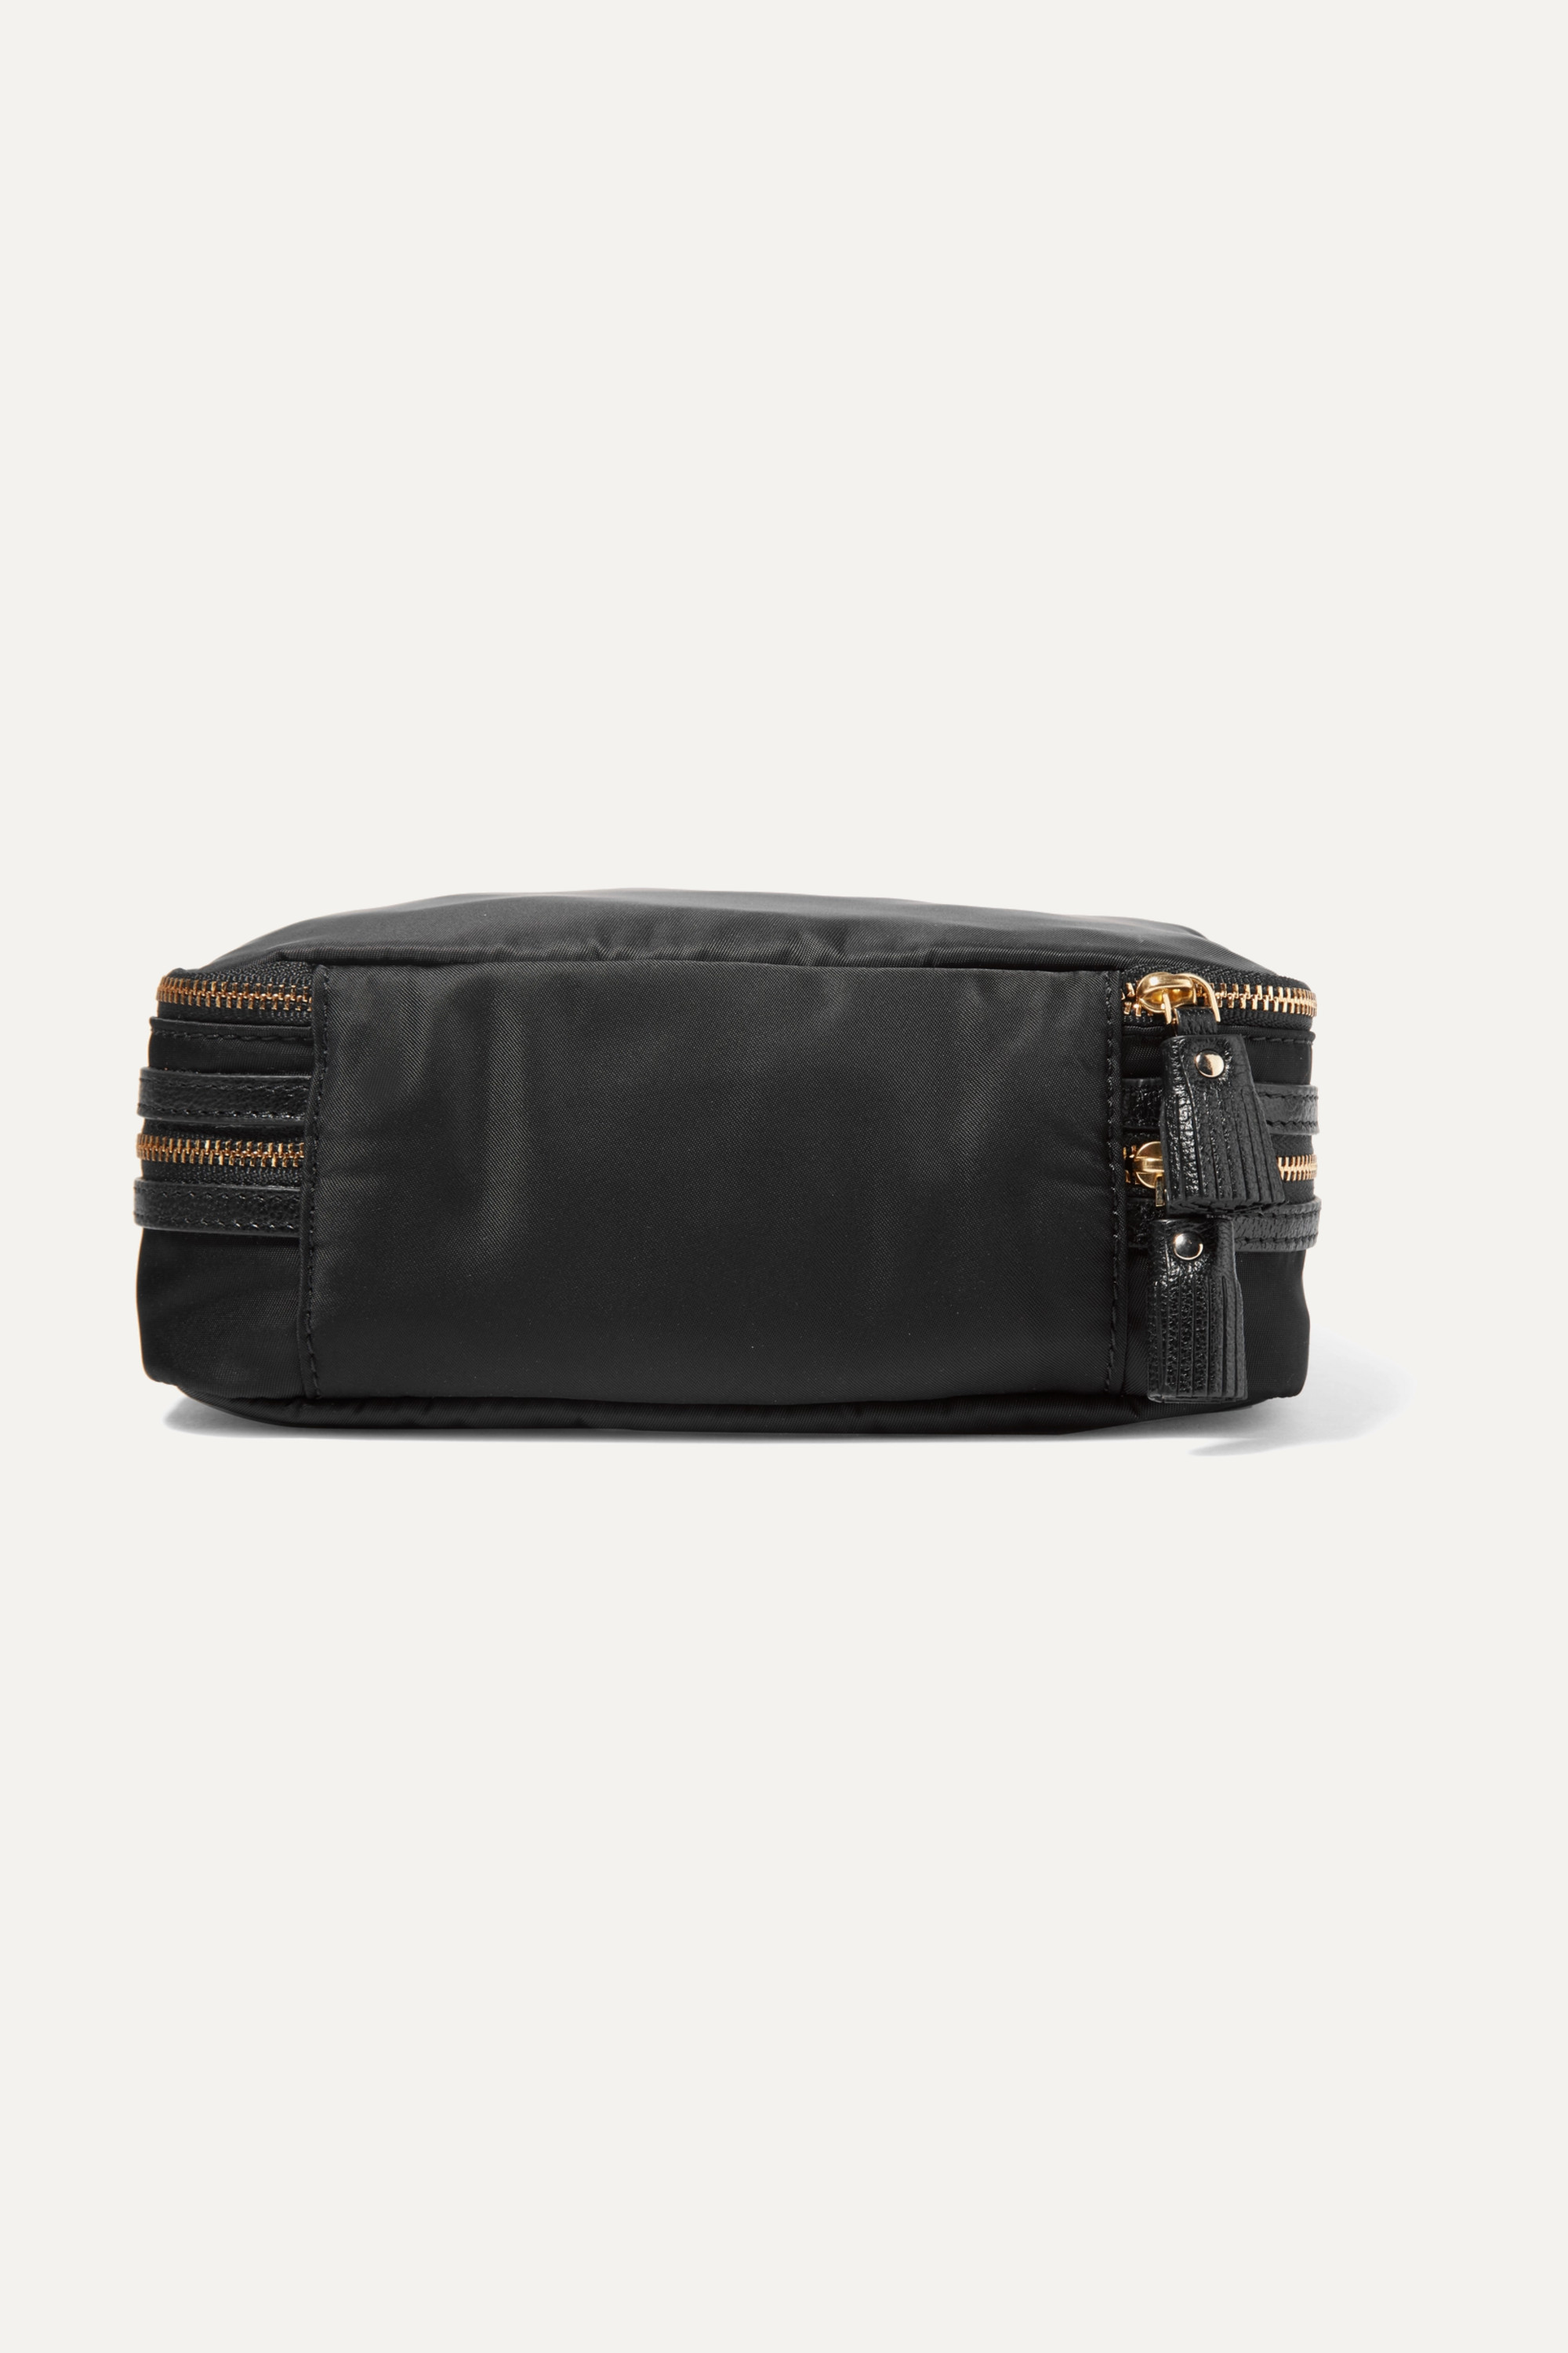 Anya Hindmarch Textured leather-trimmed shell jewelry case